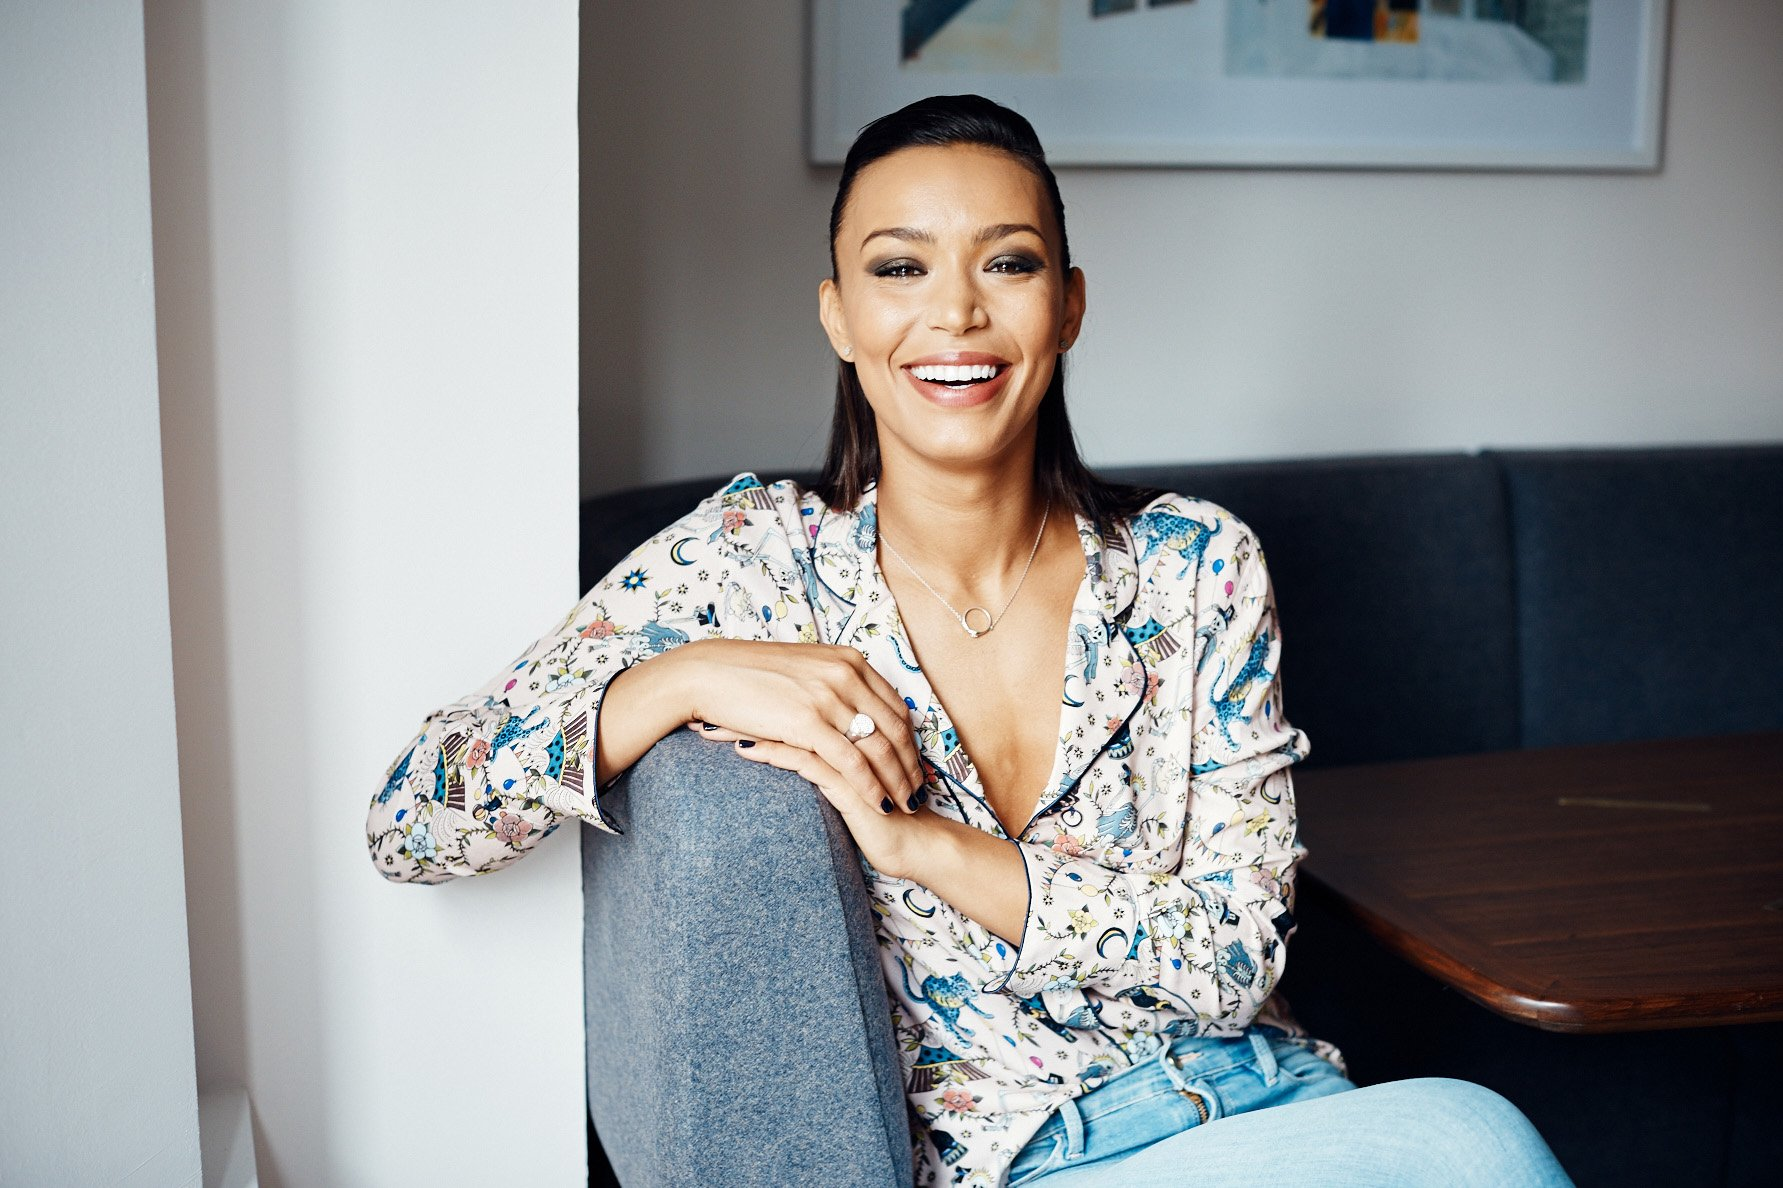 10 things you need to know about @baywatchmovie star @IlfeneshHadera: https://t.co/E169iJzRxE https://t.co/vbgSqH4tnK